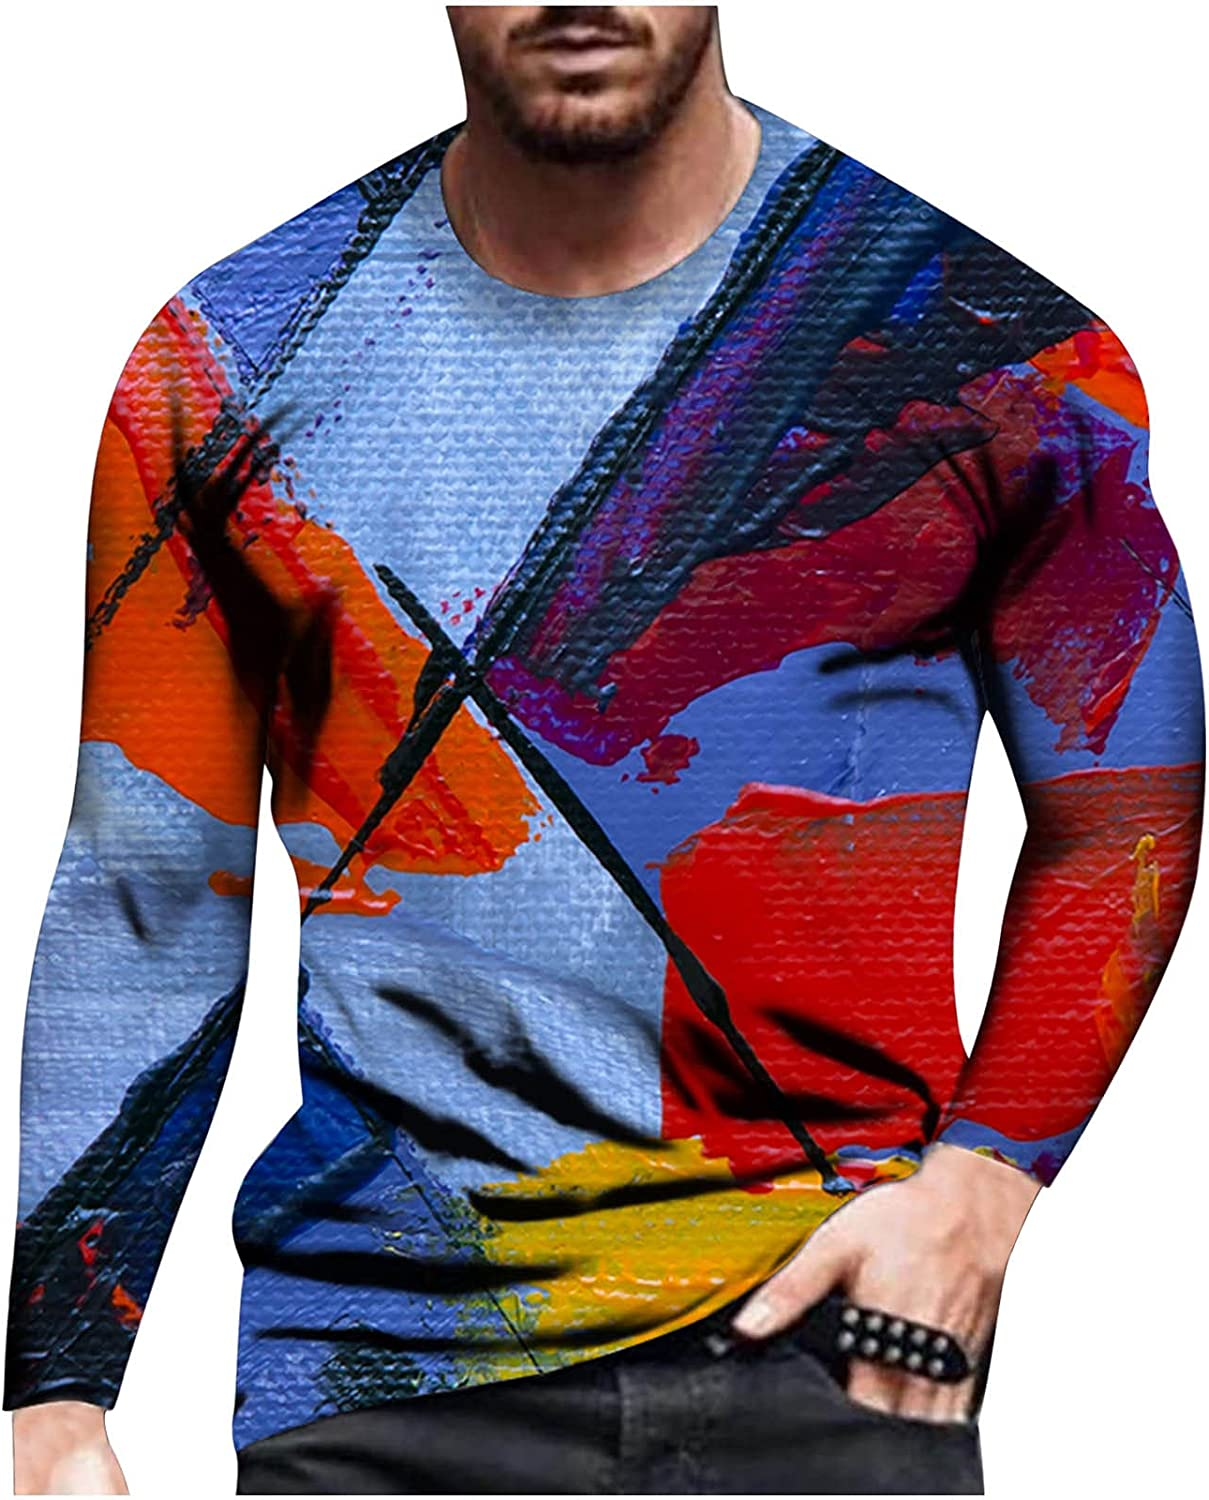 Bravetoshop Men's T-Shirts,3D Printed Novelty Graphic Tee Tops O-Neck Long Sleeve Street Fashion Shirt for Men